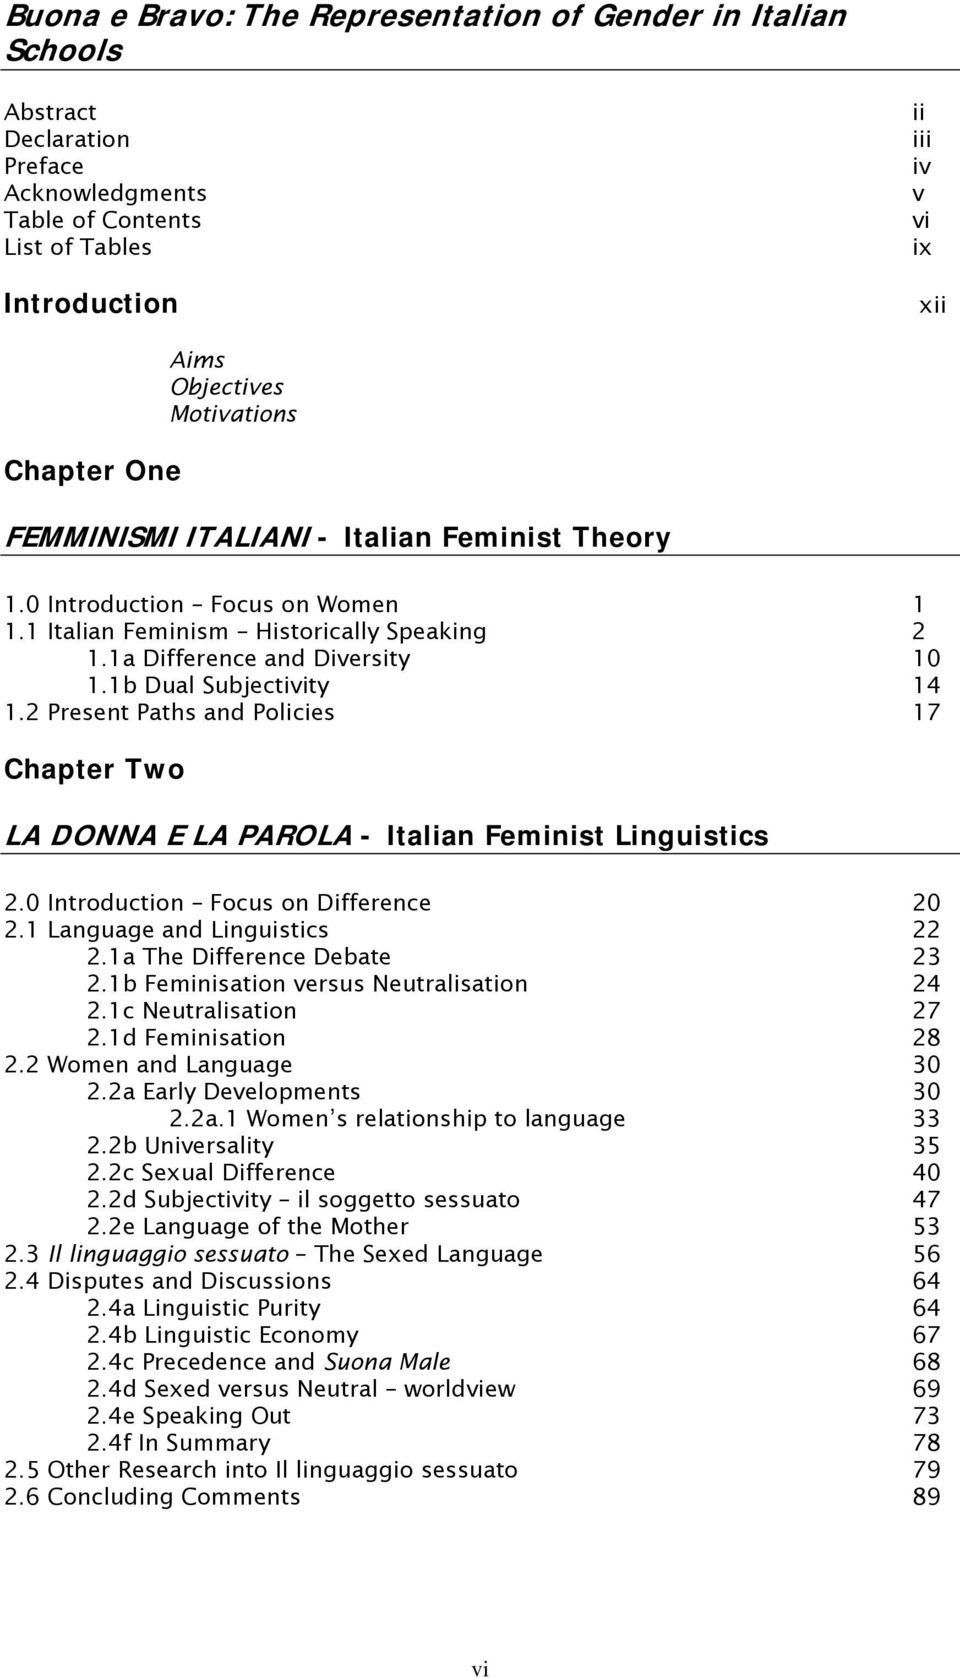 1b Dual Subjectivity 14 1.2 Present Paths and Policies 17 Chapter Two LA DONNA E LA PAROLA - Italian Feminist Linguistics 2.0 Introduction Focus on Difference 20 2.1 Language and Linguistics 22 2.